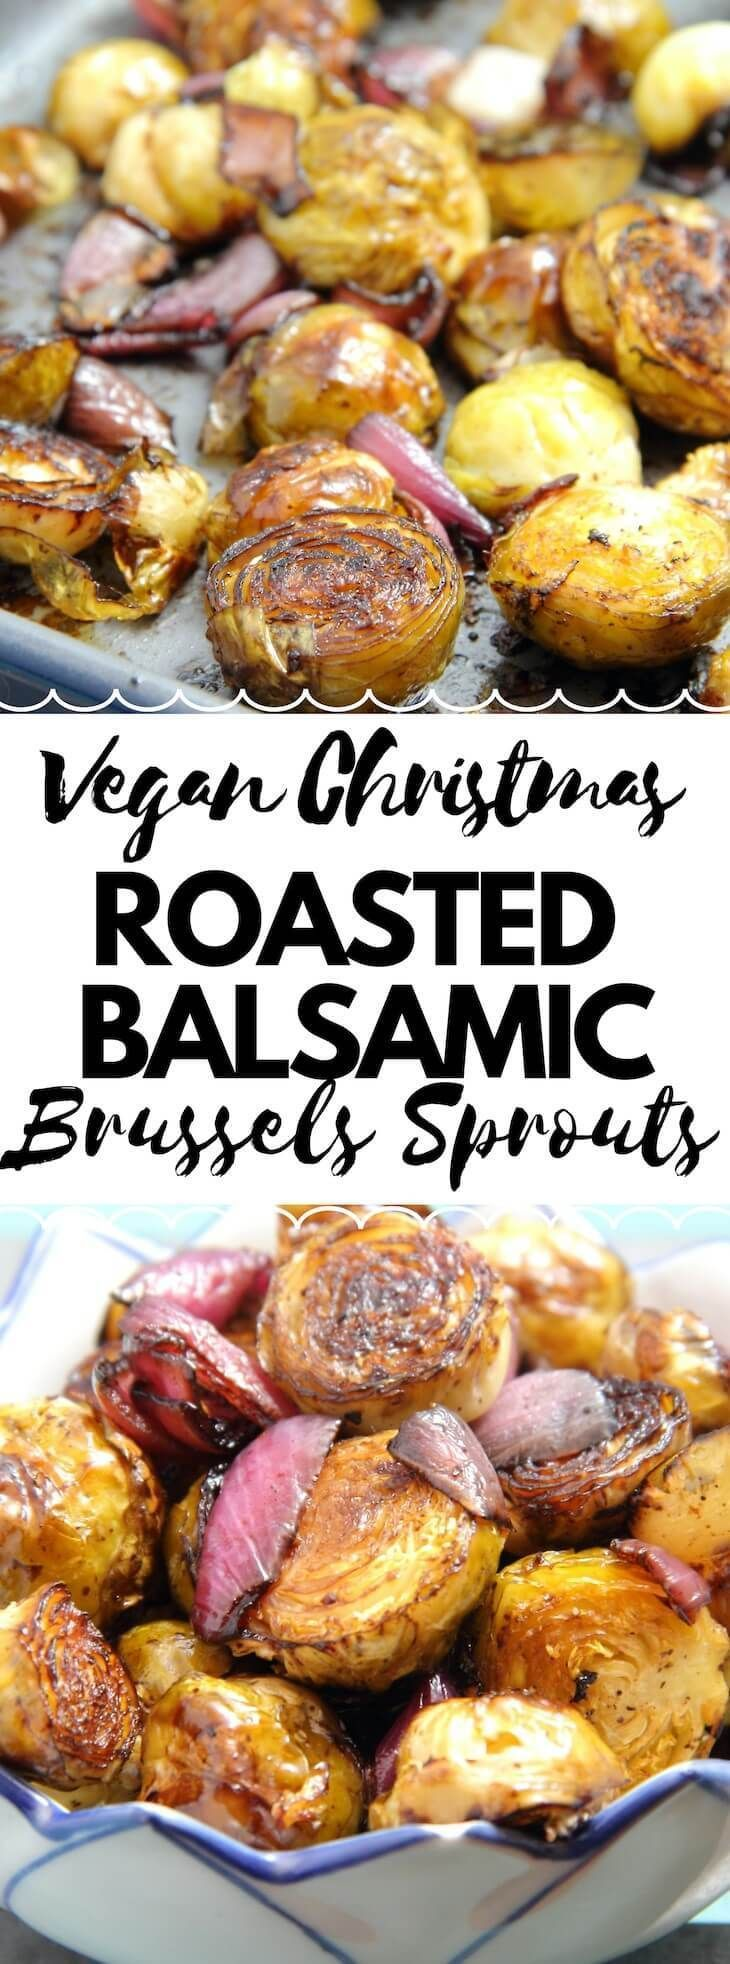 Roasted Balsamic Brussels Sprouts | Vegan | The Tofu Diaries